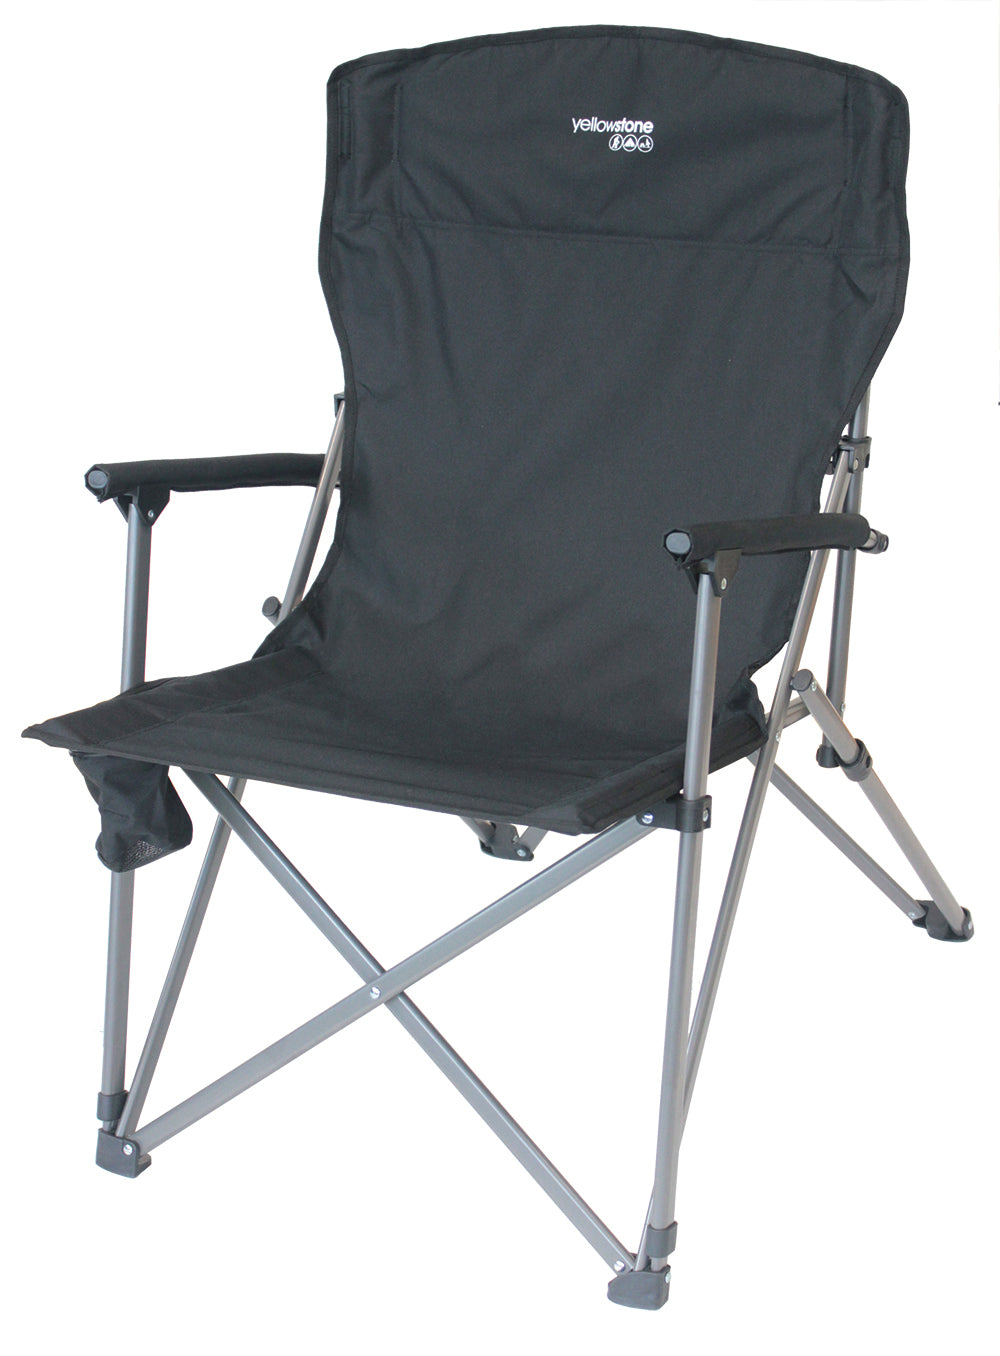 Yellowstone Lightweight Castleton Camping Chair